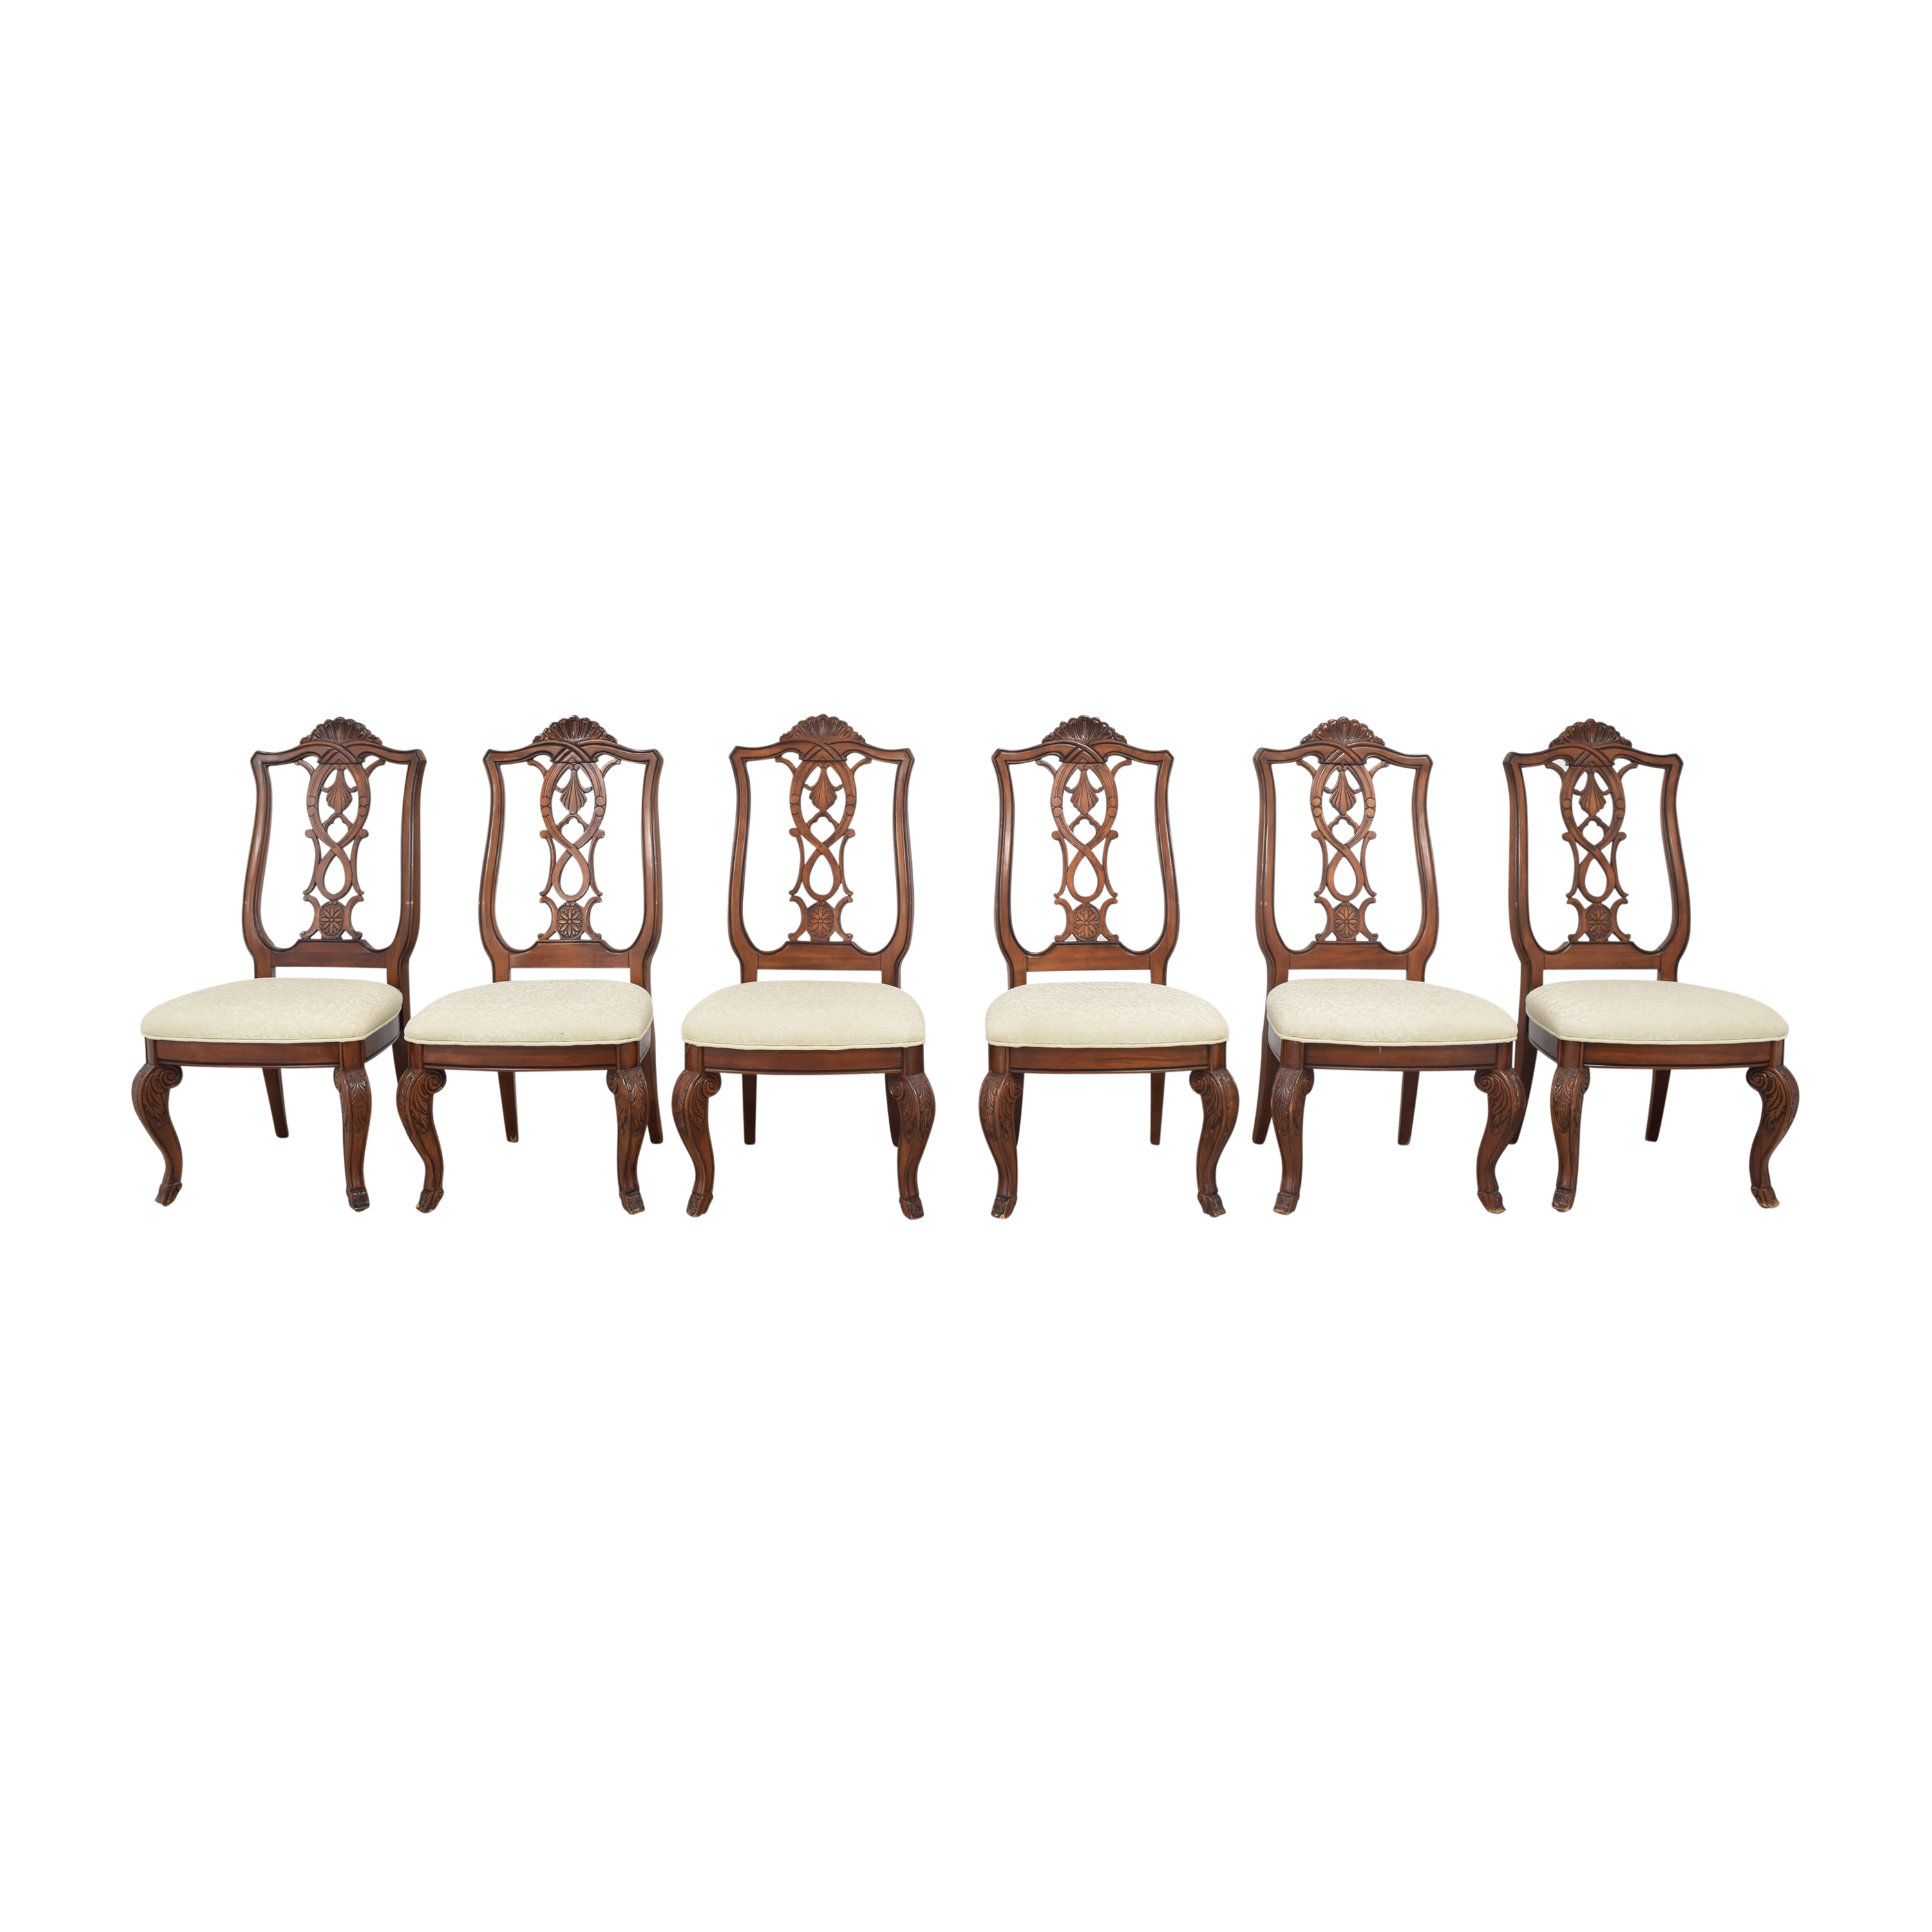 Raymour & Flanigan Raymour & Flanigan Upholstered Dining Chairs price